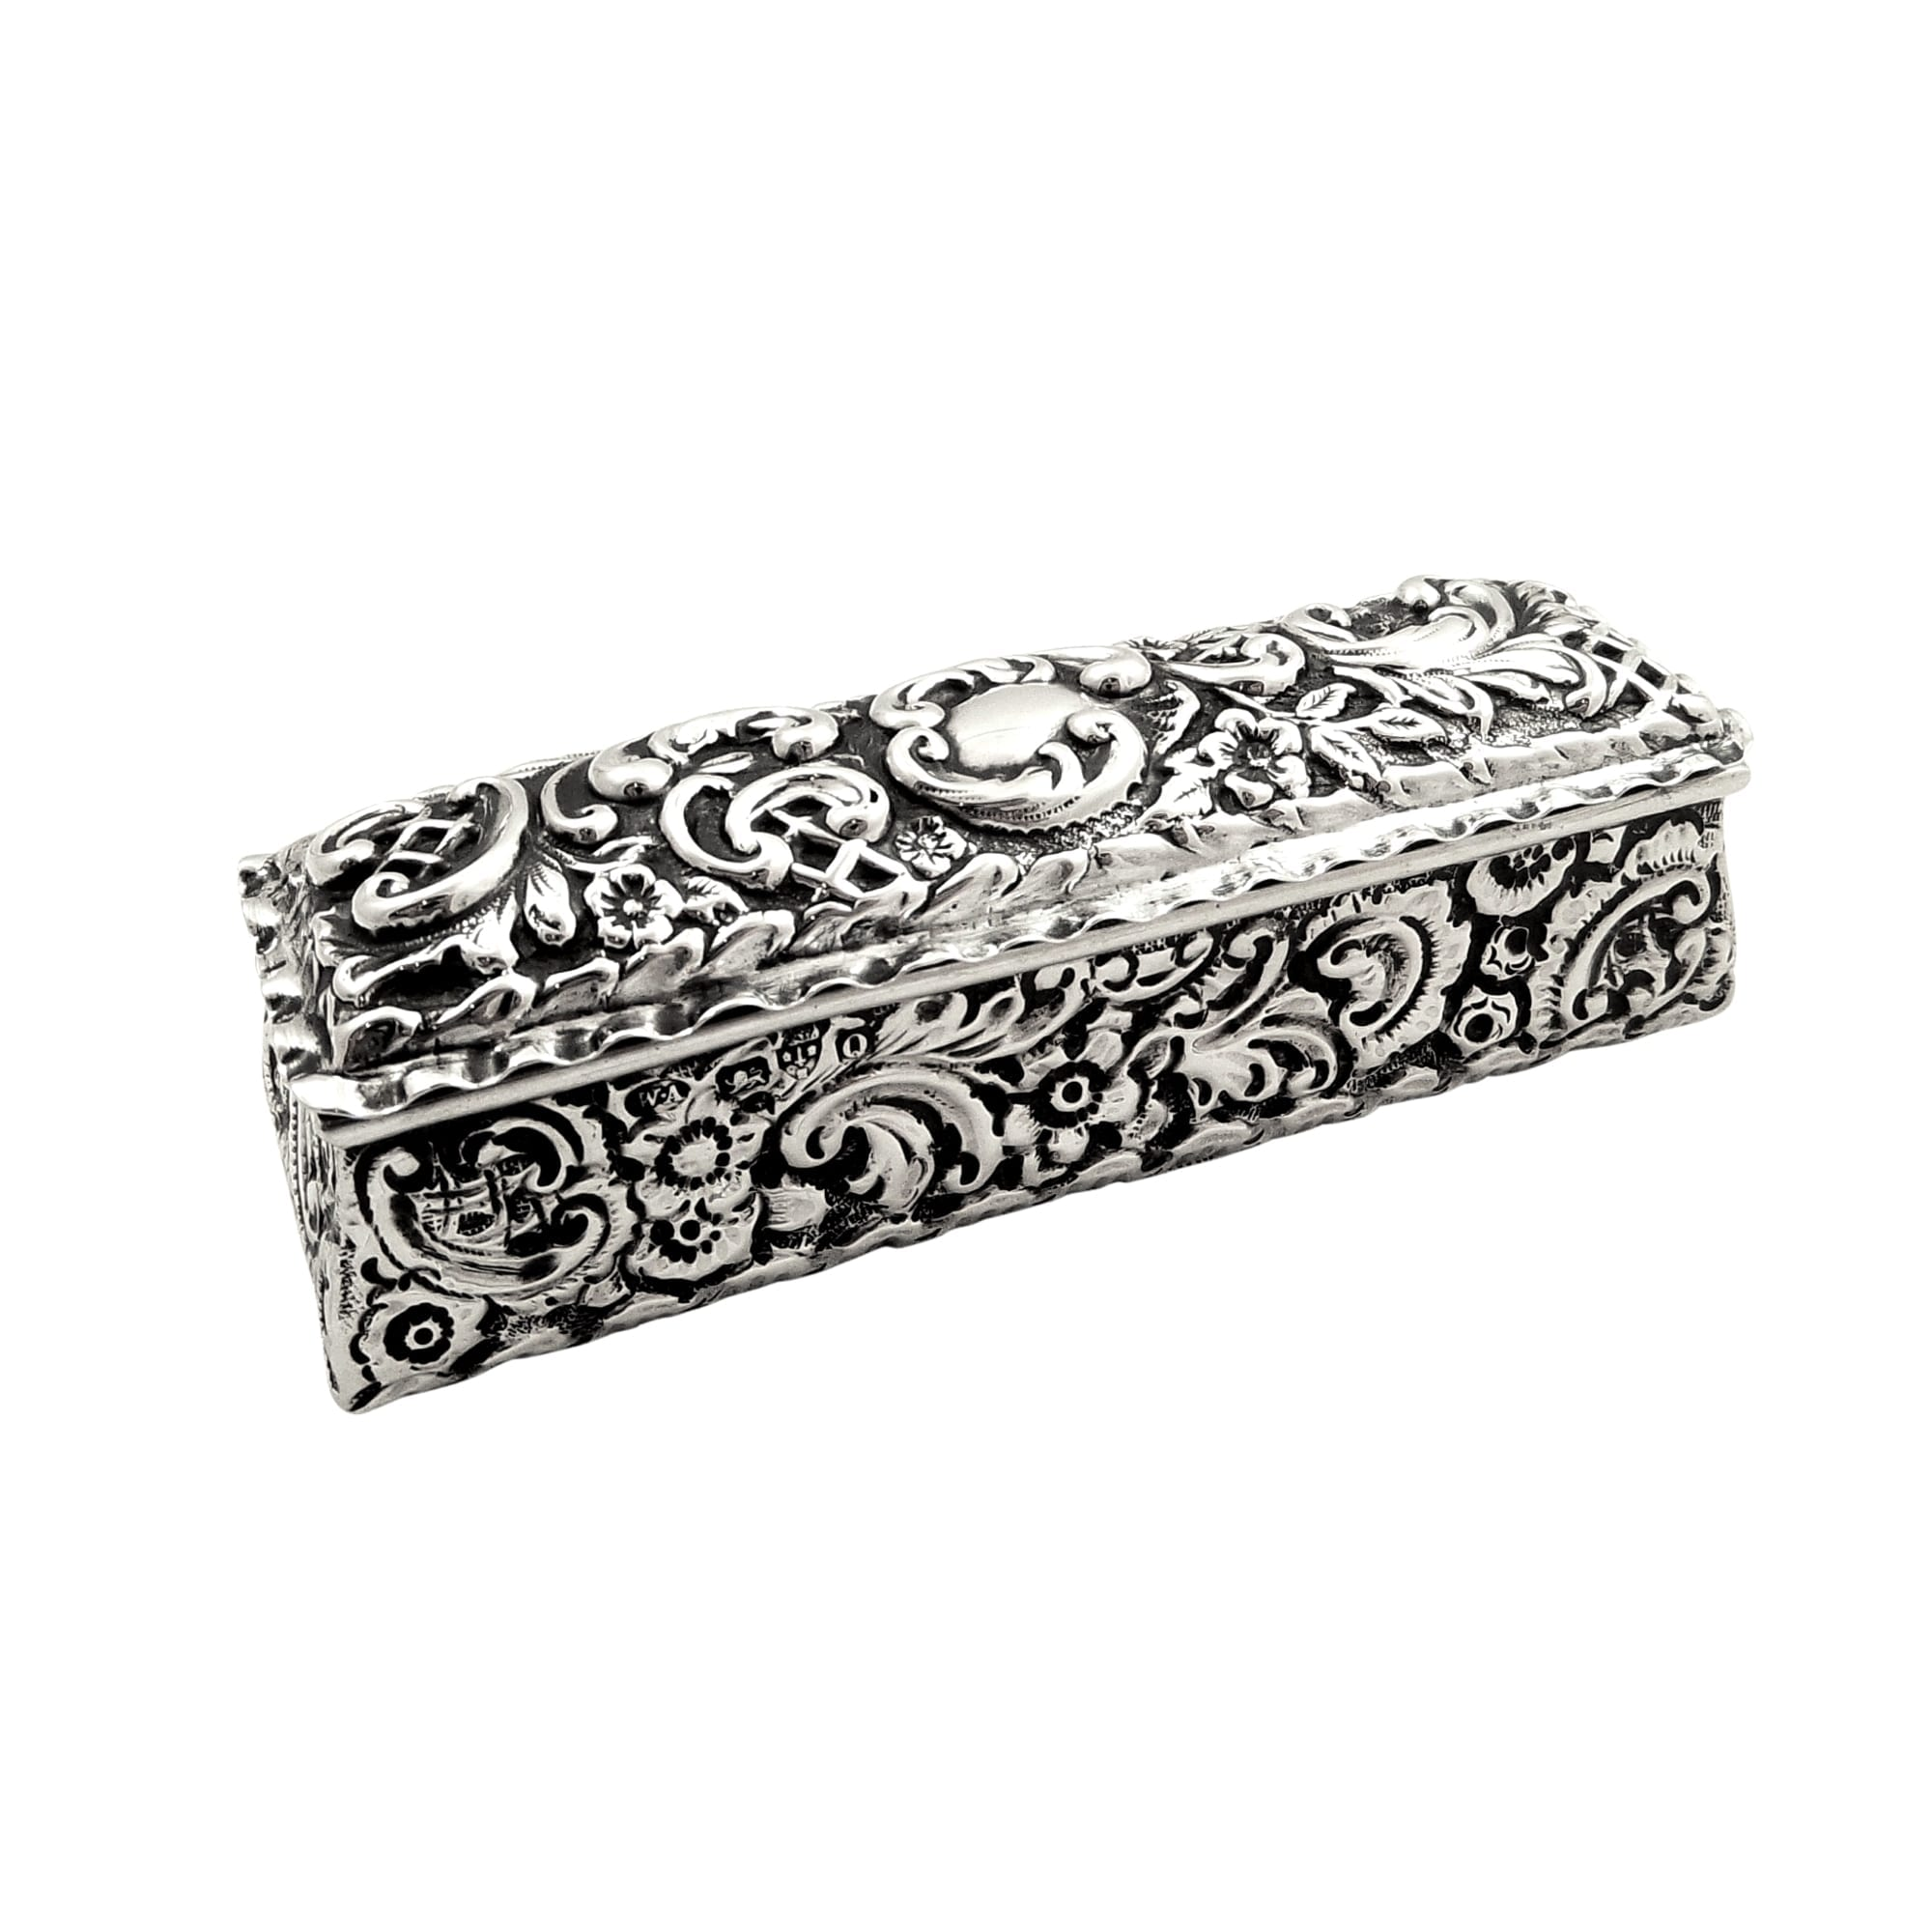 Antique Victorian Sterling Silver Ring Box 1899